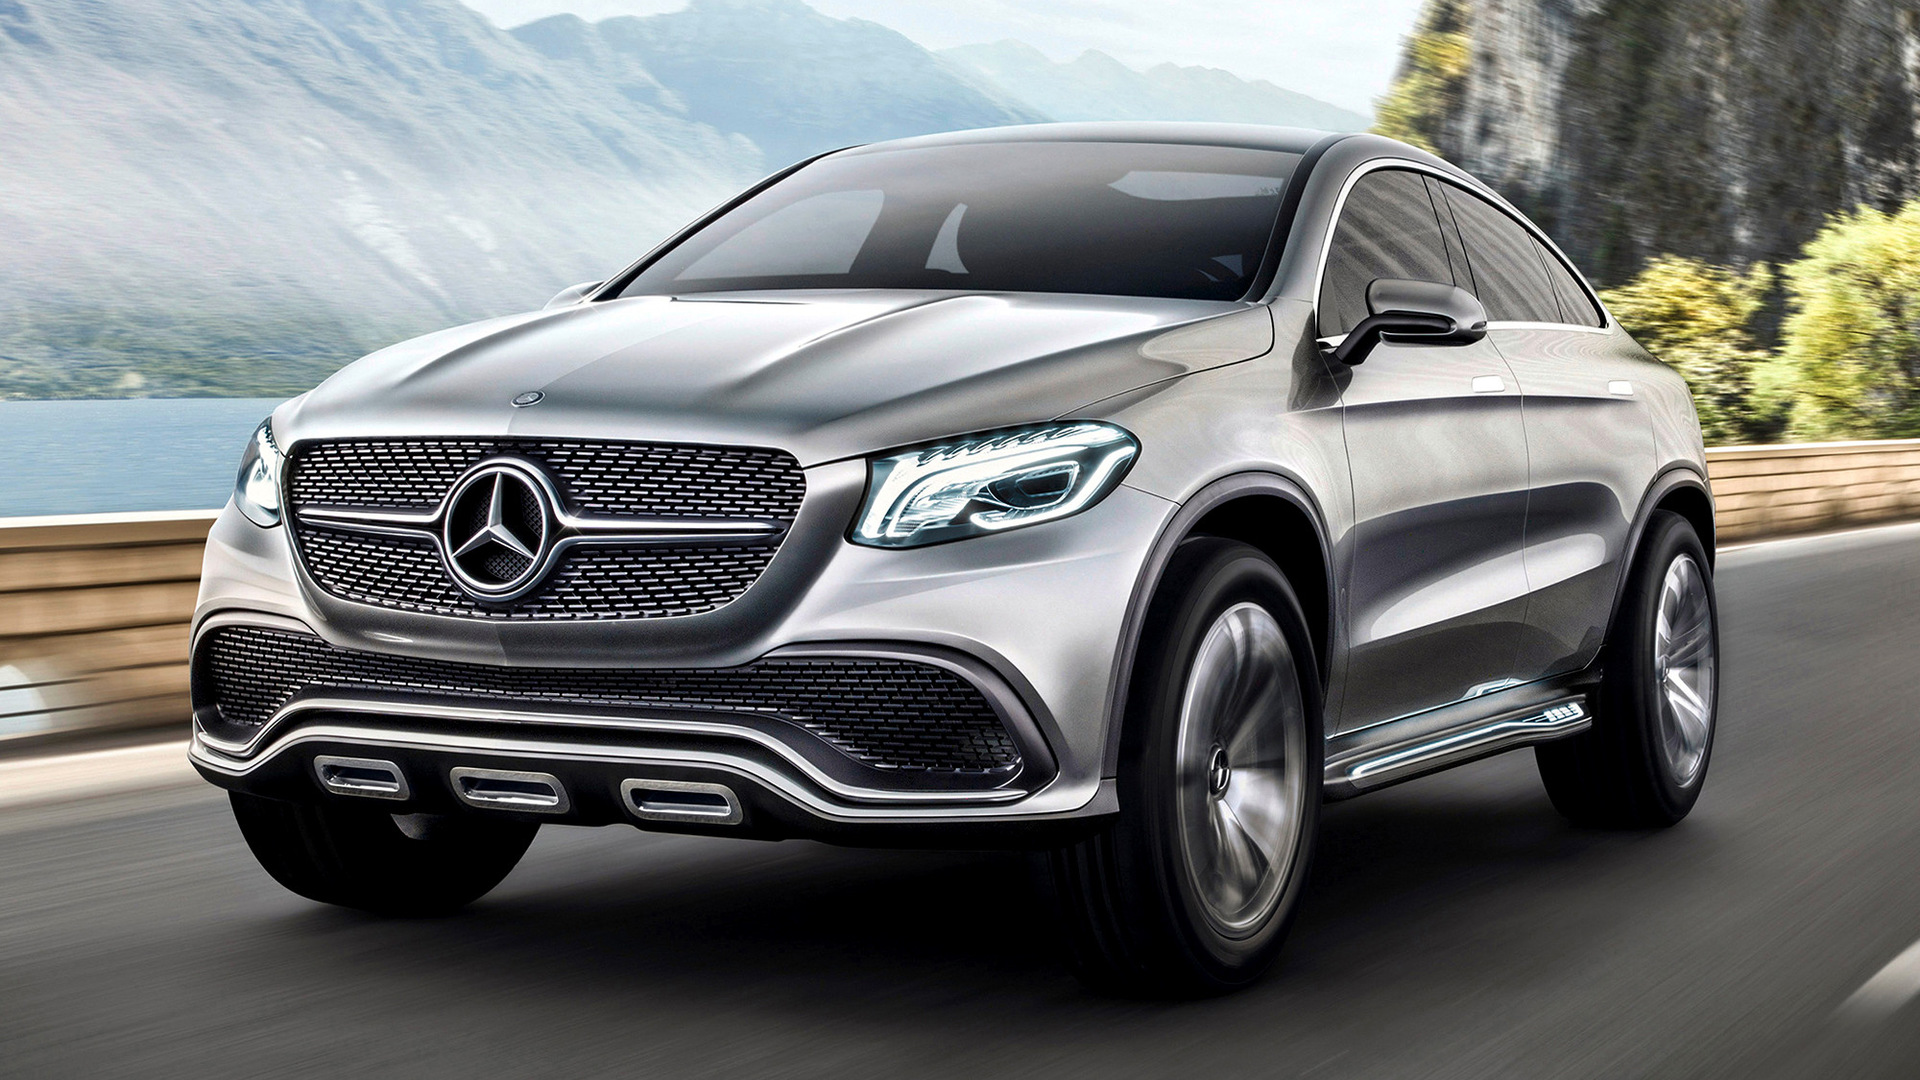 2014 Mercedes Benz Concept Coupe Suv Wallpapers And Hd